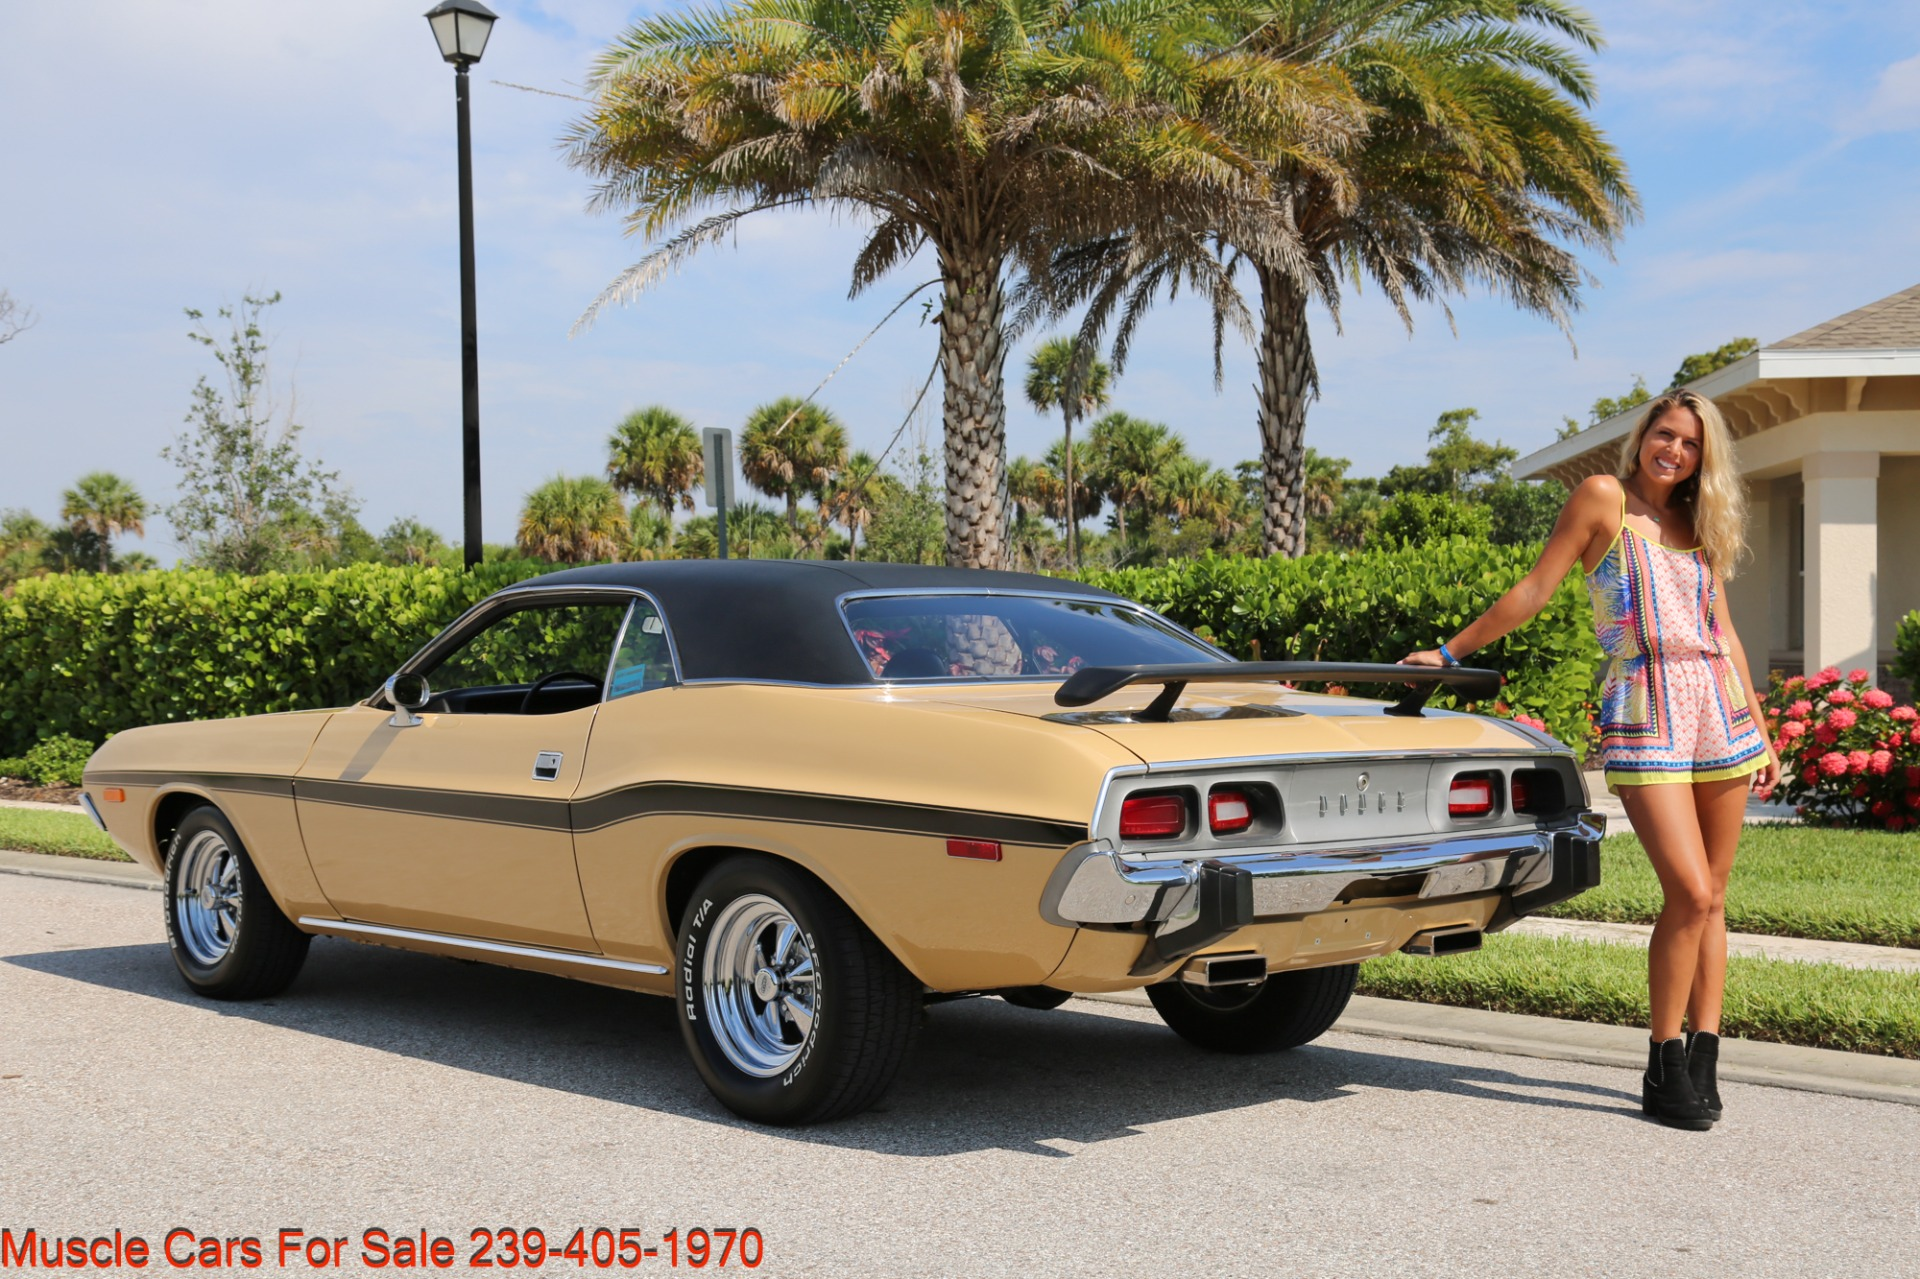 Used 1974 Dodge Challenger V8  Auto for sale $34,000 at Muscle Cars for Sale Inc. in Fort Myers FL 33912 3